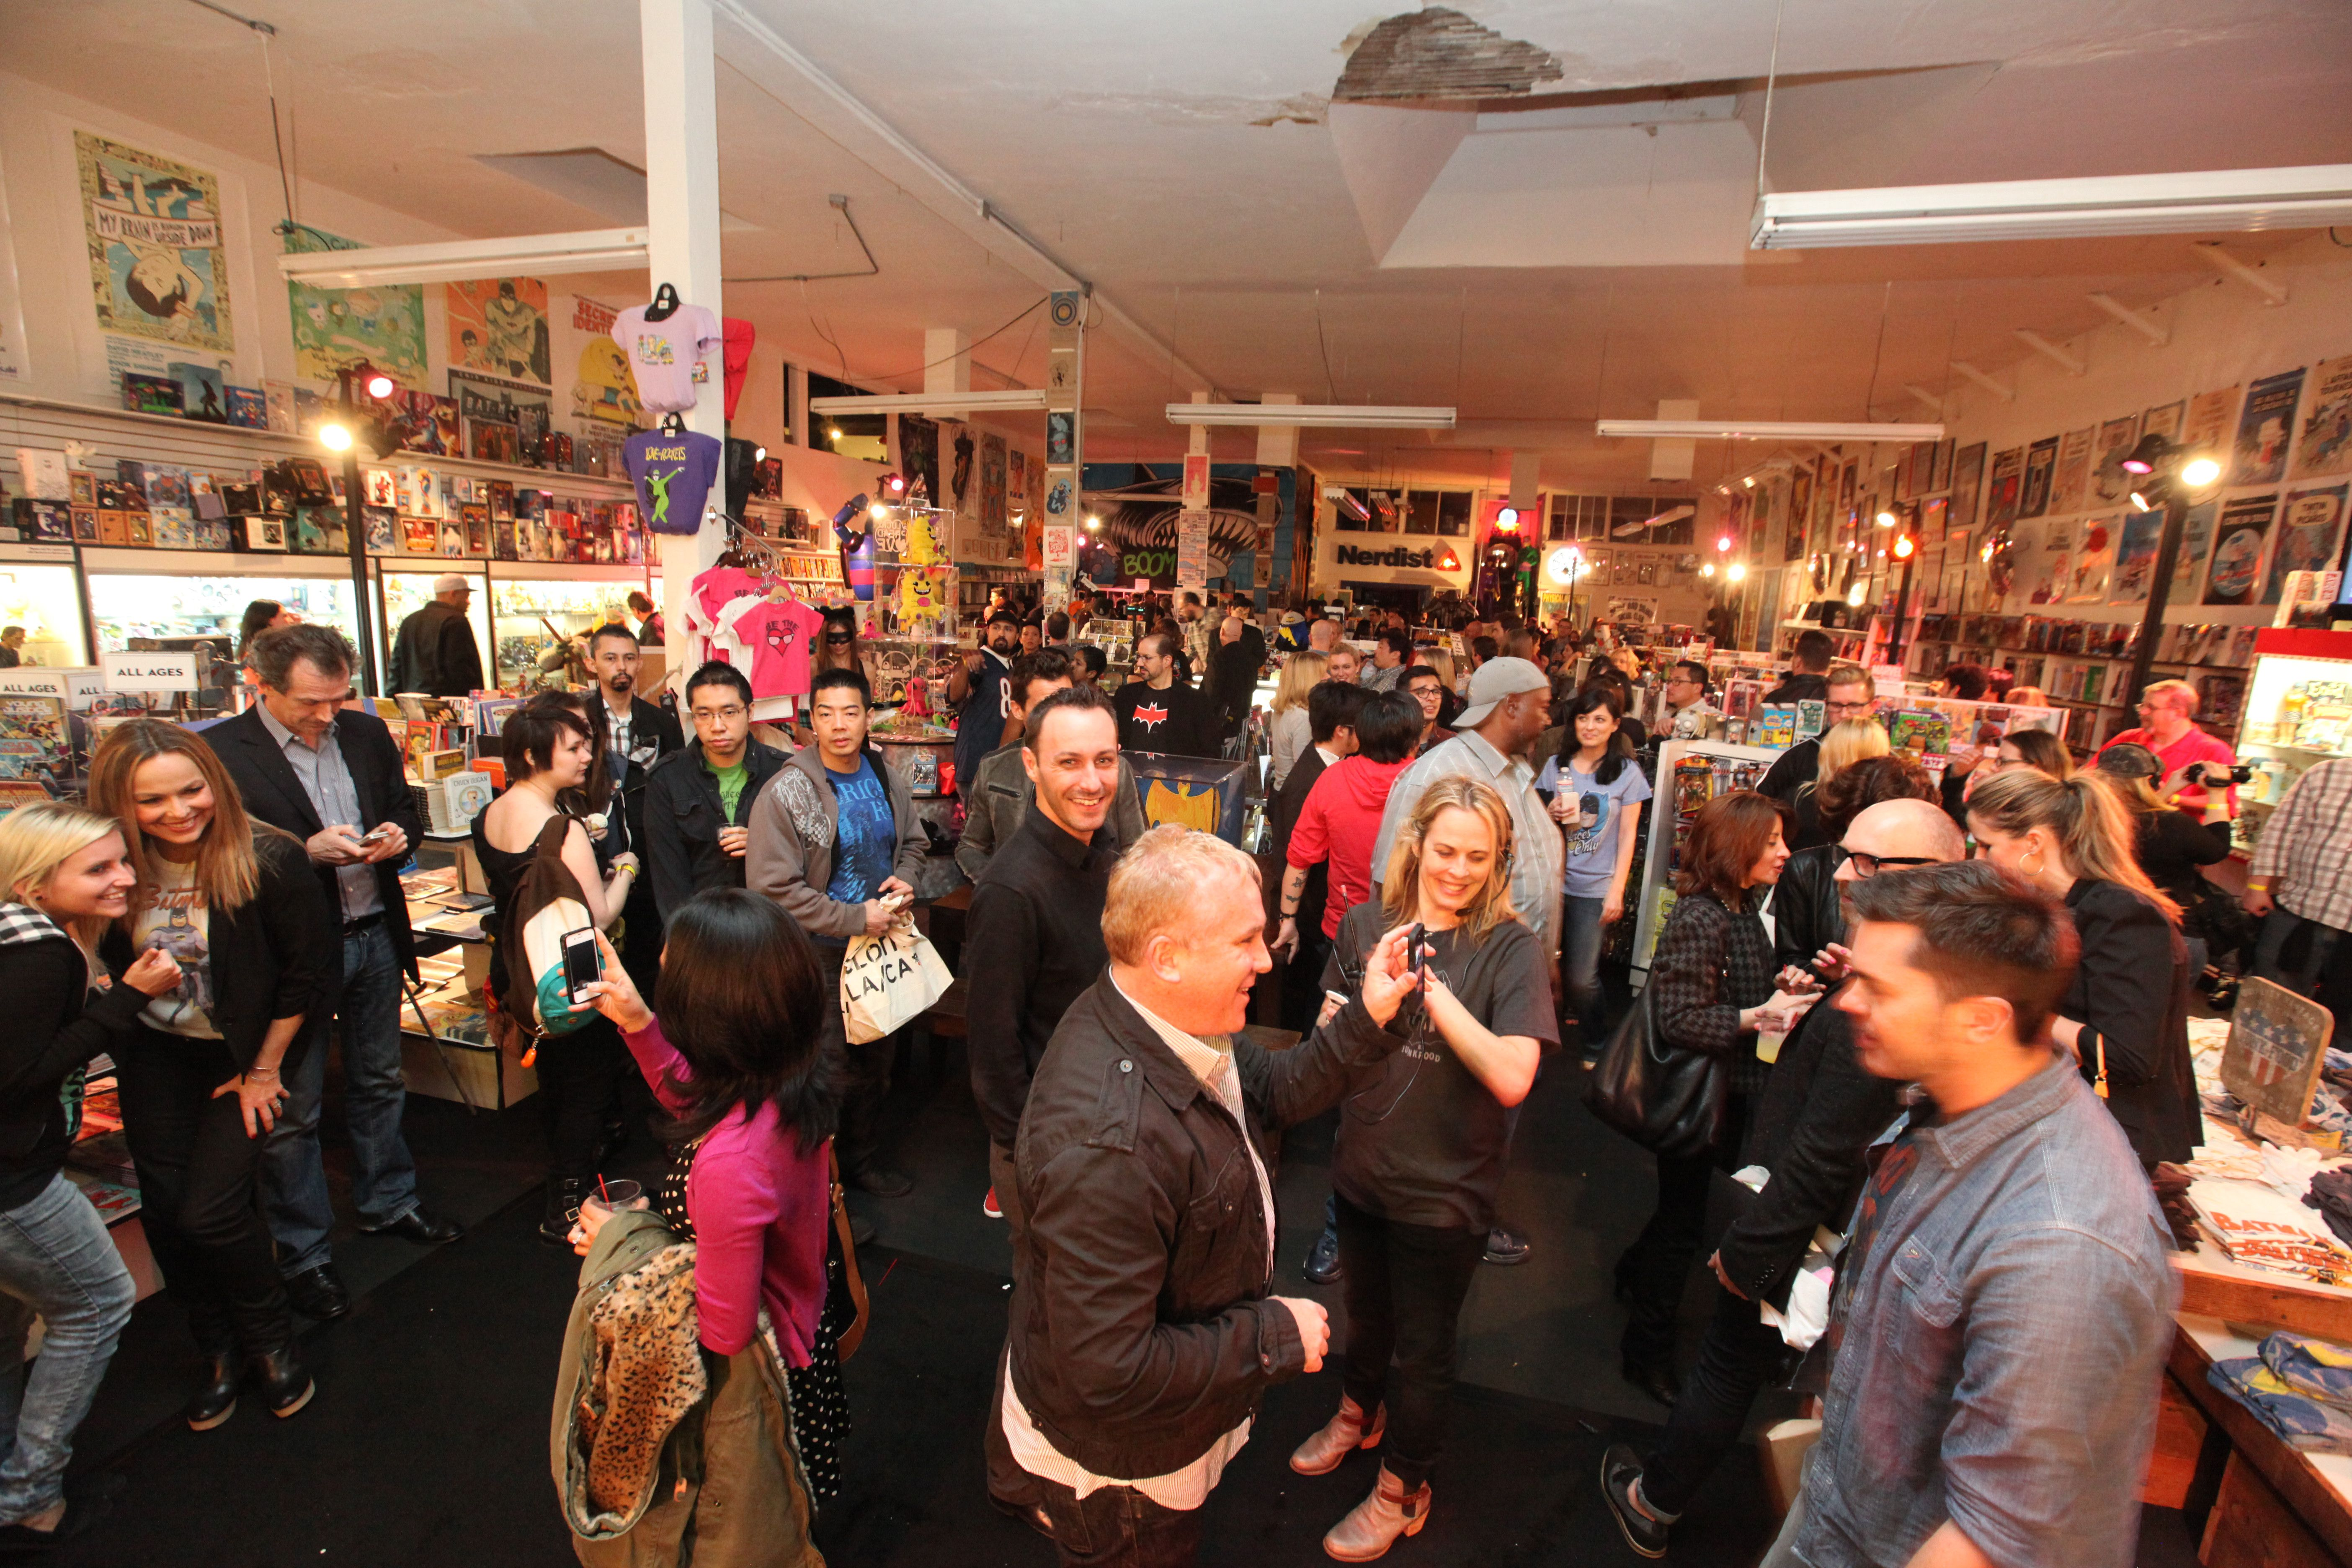 A general view of atmosphere at Warner Bros. Consumer Products and Junk Food Clothing's launch event at Meltdown Comics on in Hollywood, CAWarner Bros. Consumer Products NEW MERCHANDISE LINE BASED ON 1960'S BATMAN CLASSIC TELEVISION SERIES LAUNCH EVENT, Hollywood, USA - 21 Mar 2013